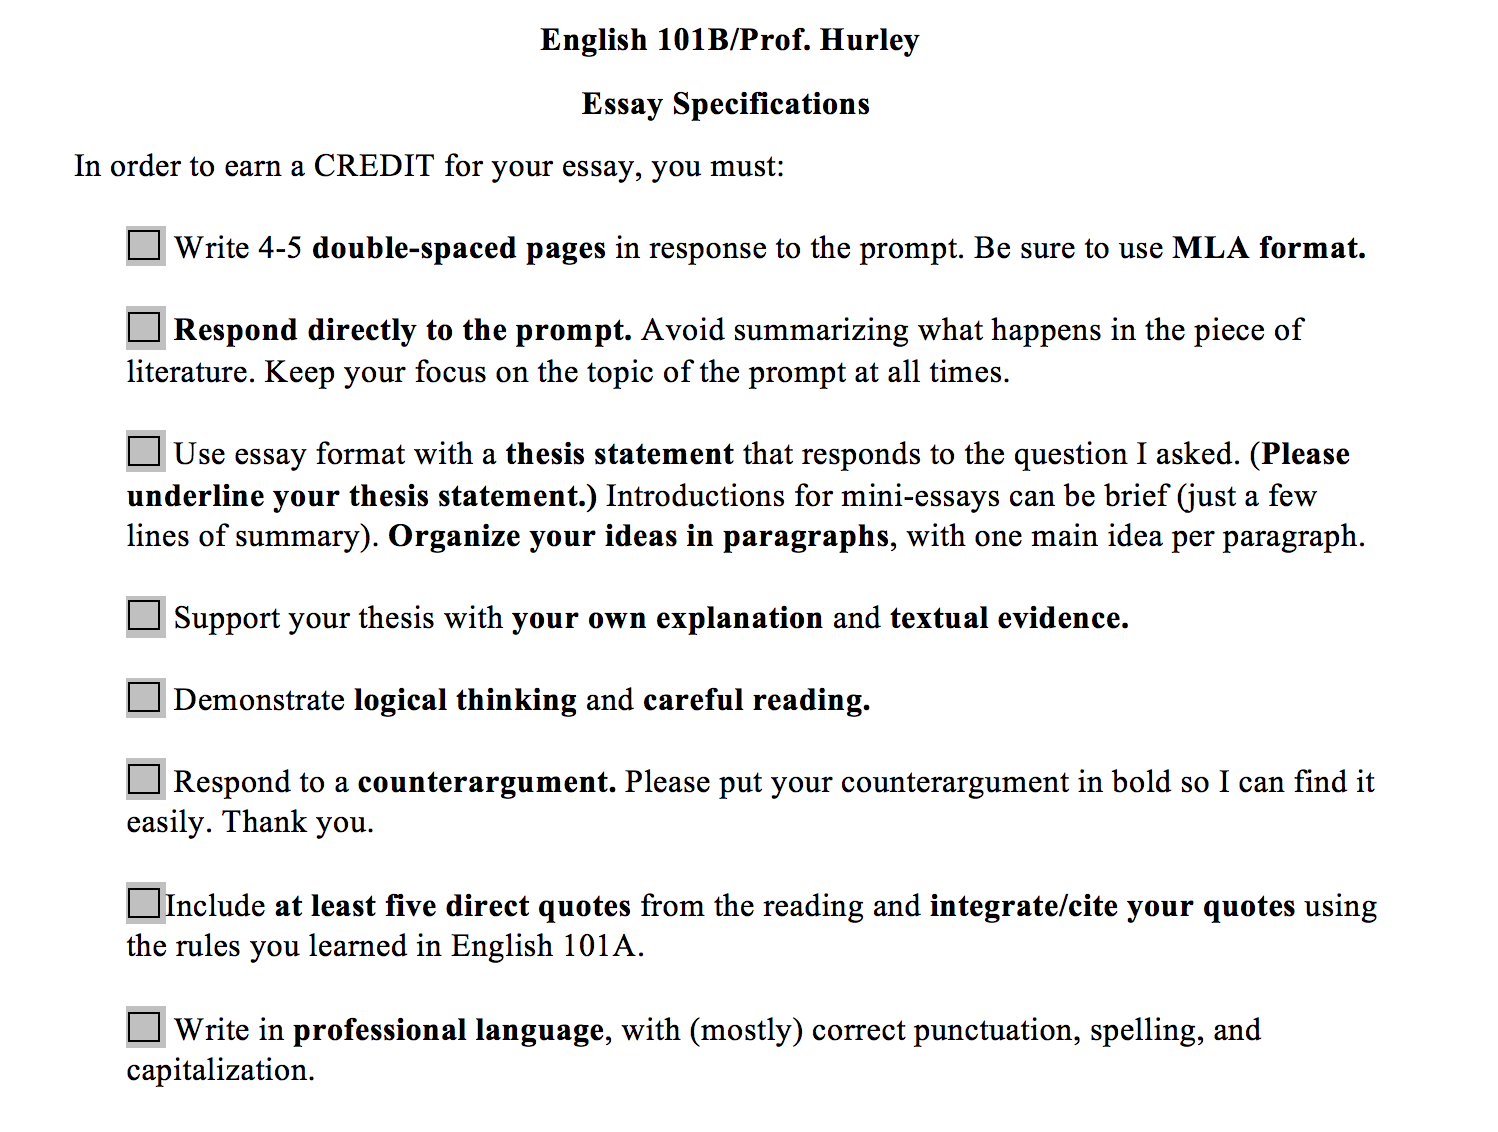 Shopping Experience Essay  Monster Walter Dean Myers Essay also Essay About Reading Experience Vagueness The Surprising Thing We Might Need More Of In  Purdue University Essay